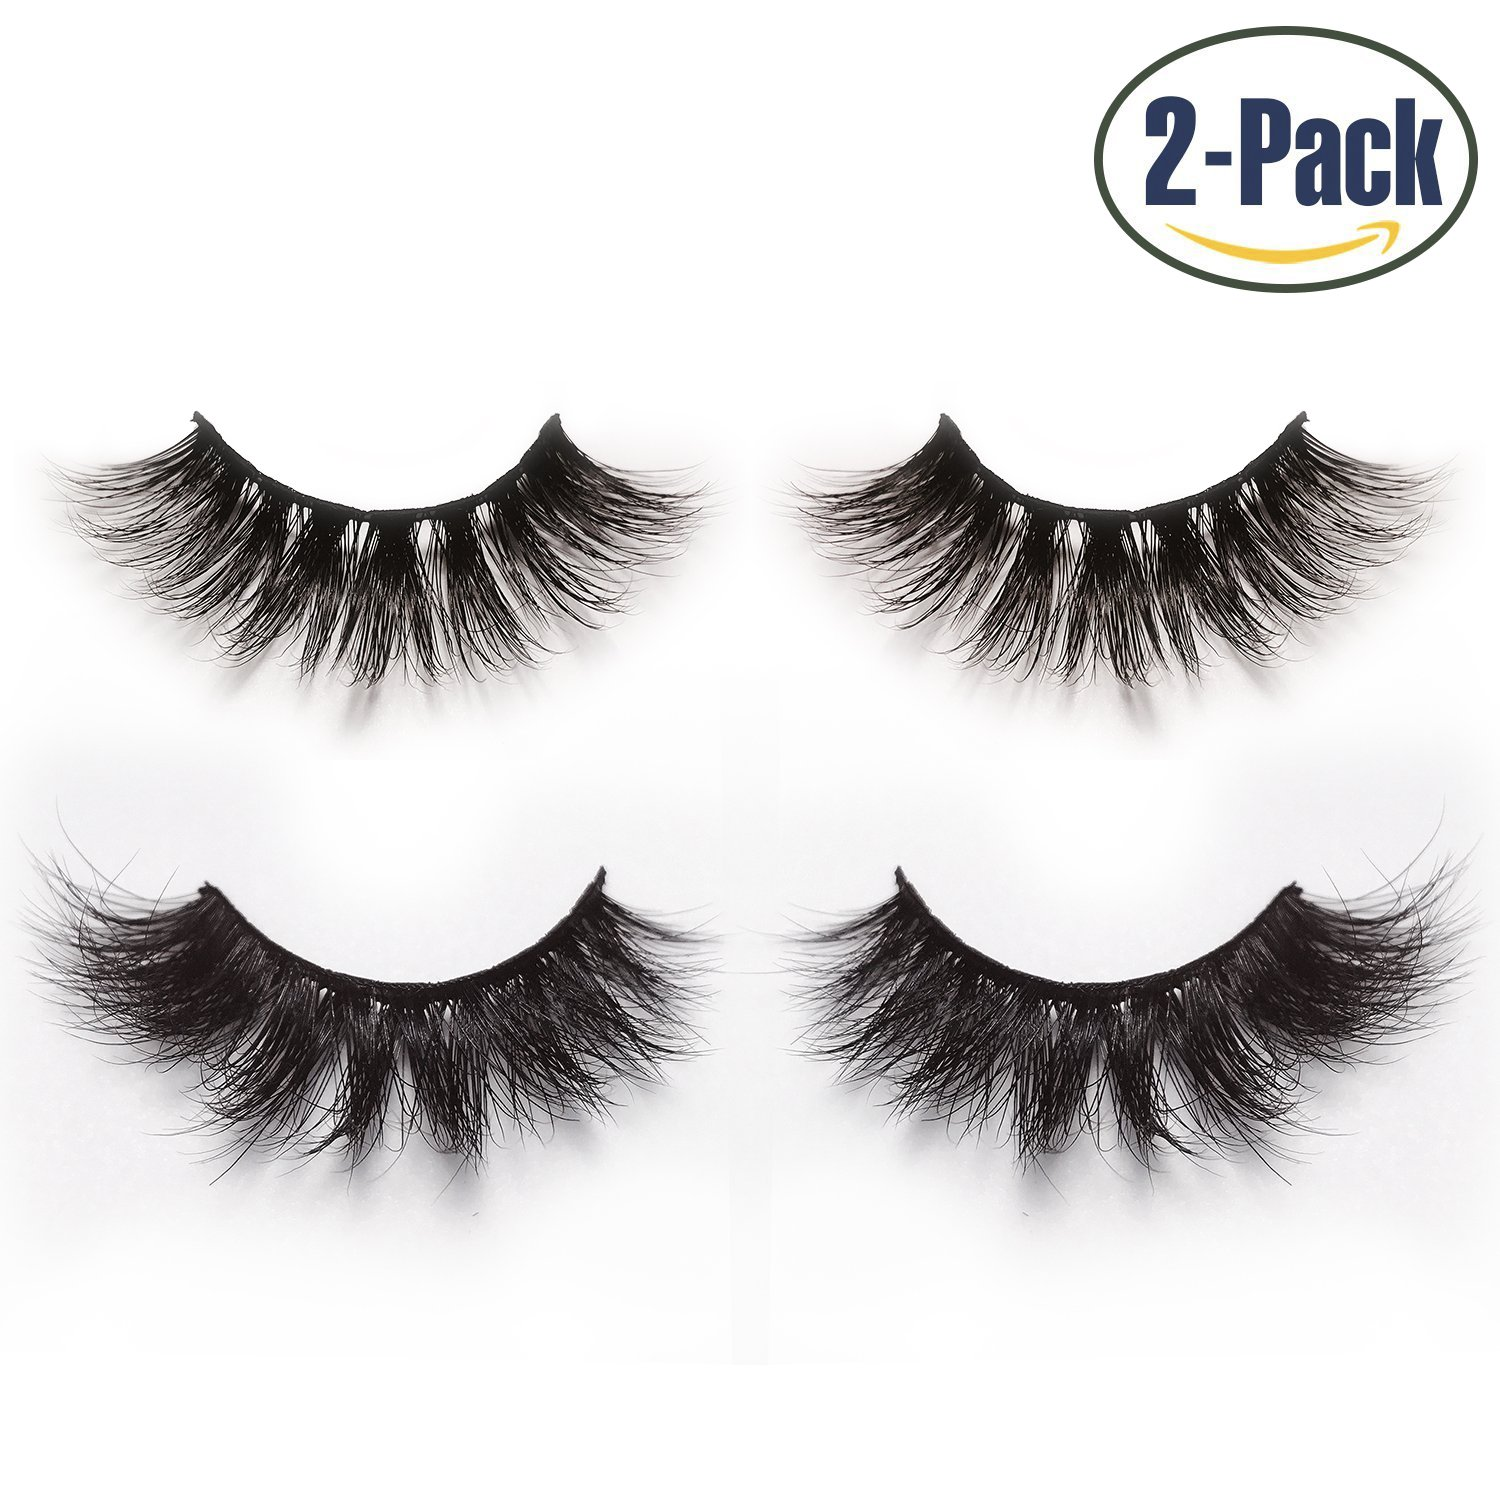 Alluring 3D & 4D Mink Fur False Eyelashes Pack of 2 Pairs,100% Natural Soft Curl Genuine Siberian Mink Hair Hand-made Luxury Fashion Fake Lashes in Premium Box Package with Mirror & Tweezer